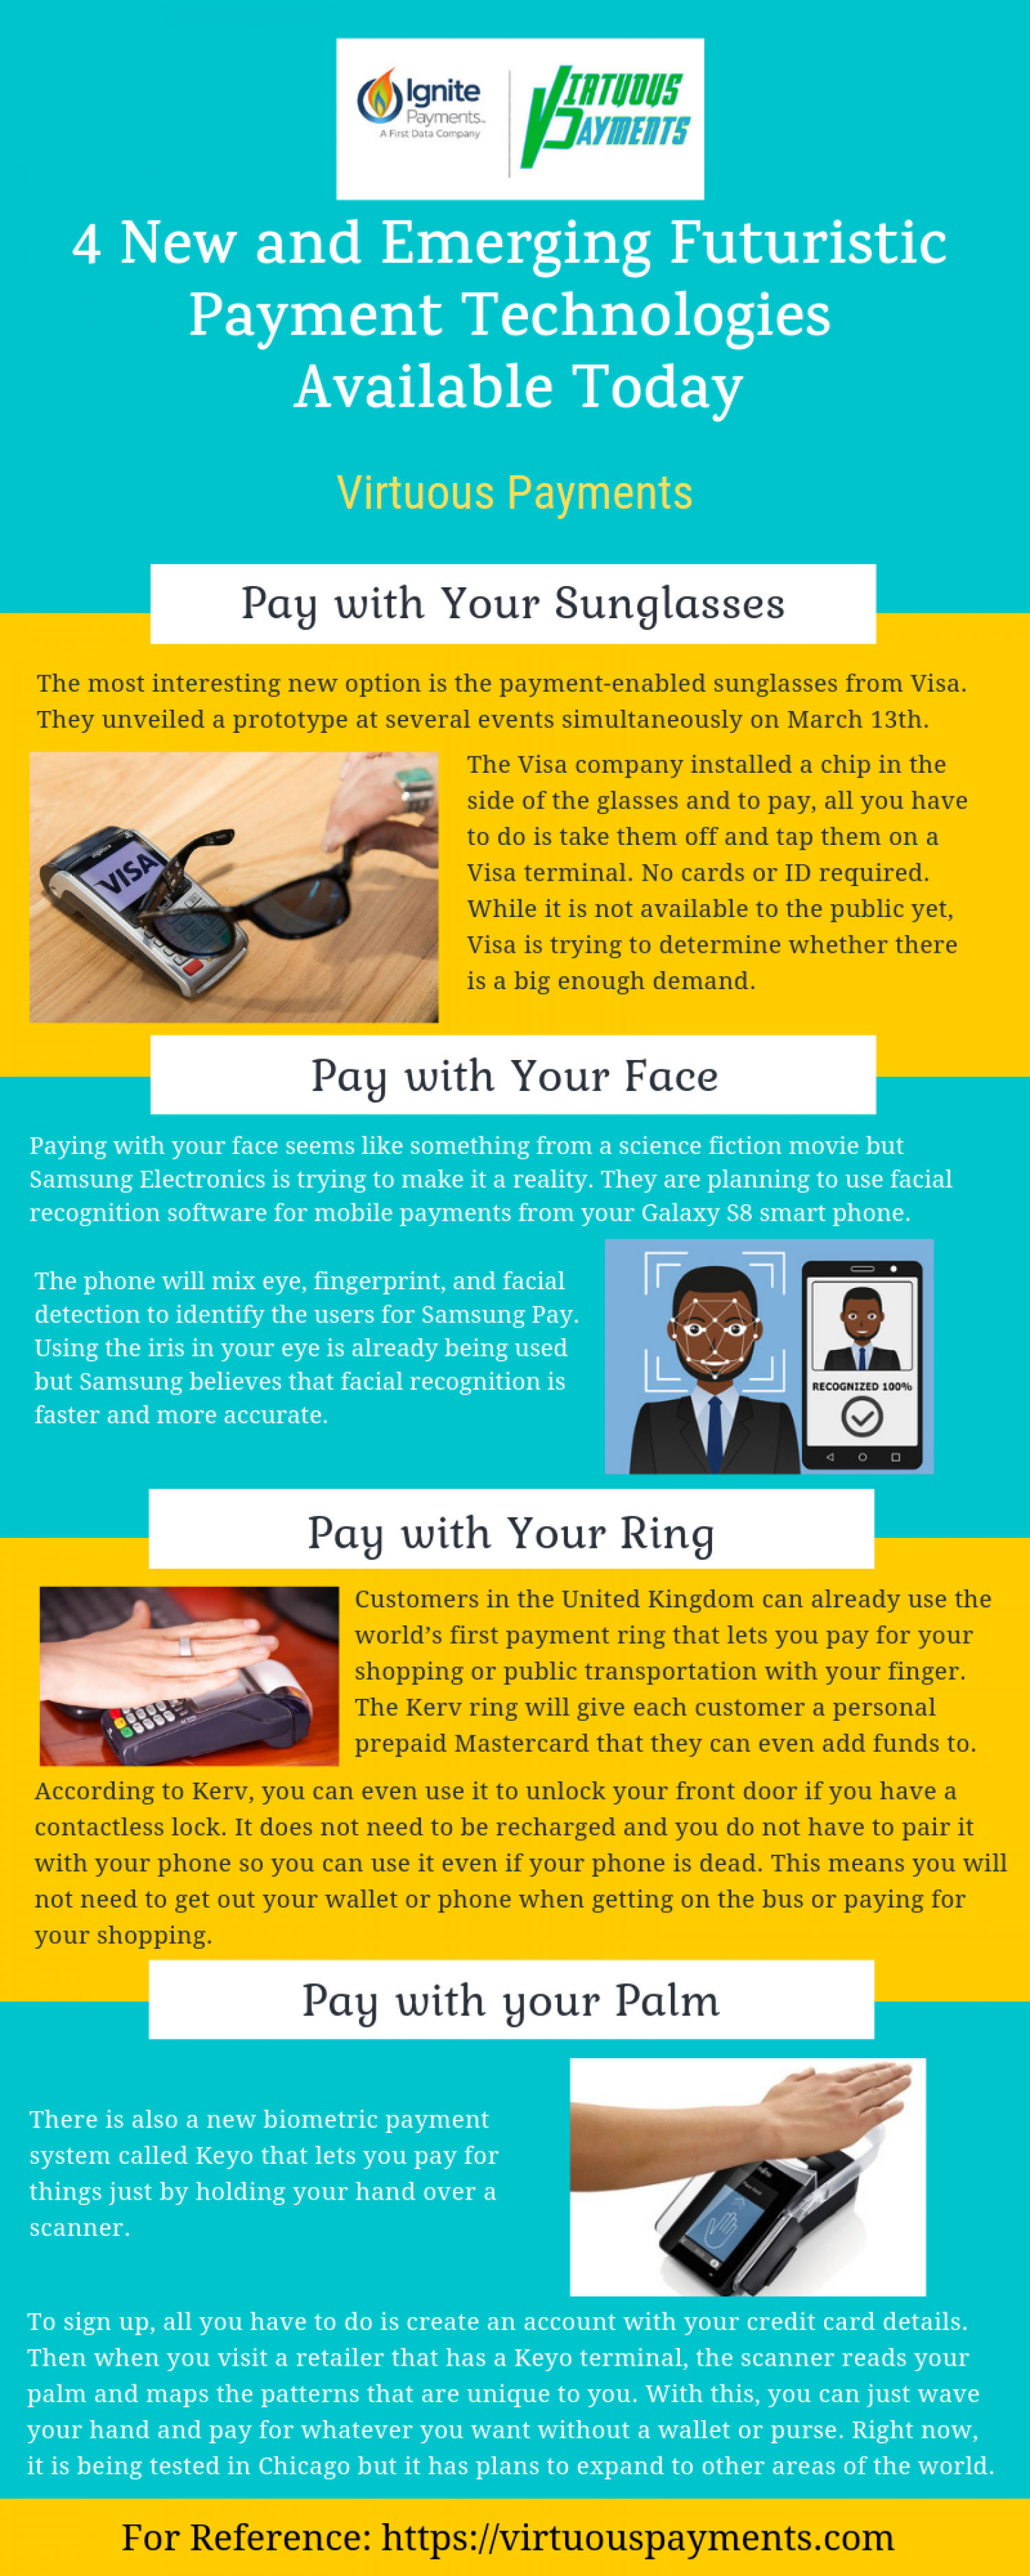 4 New and Emerging Futuristic Payment Technologies Available Today - Virtuous Payments Infographic